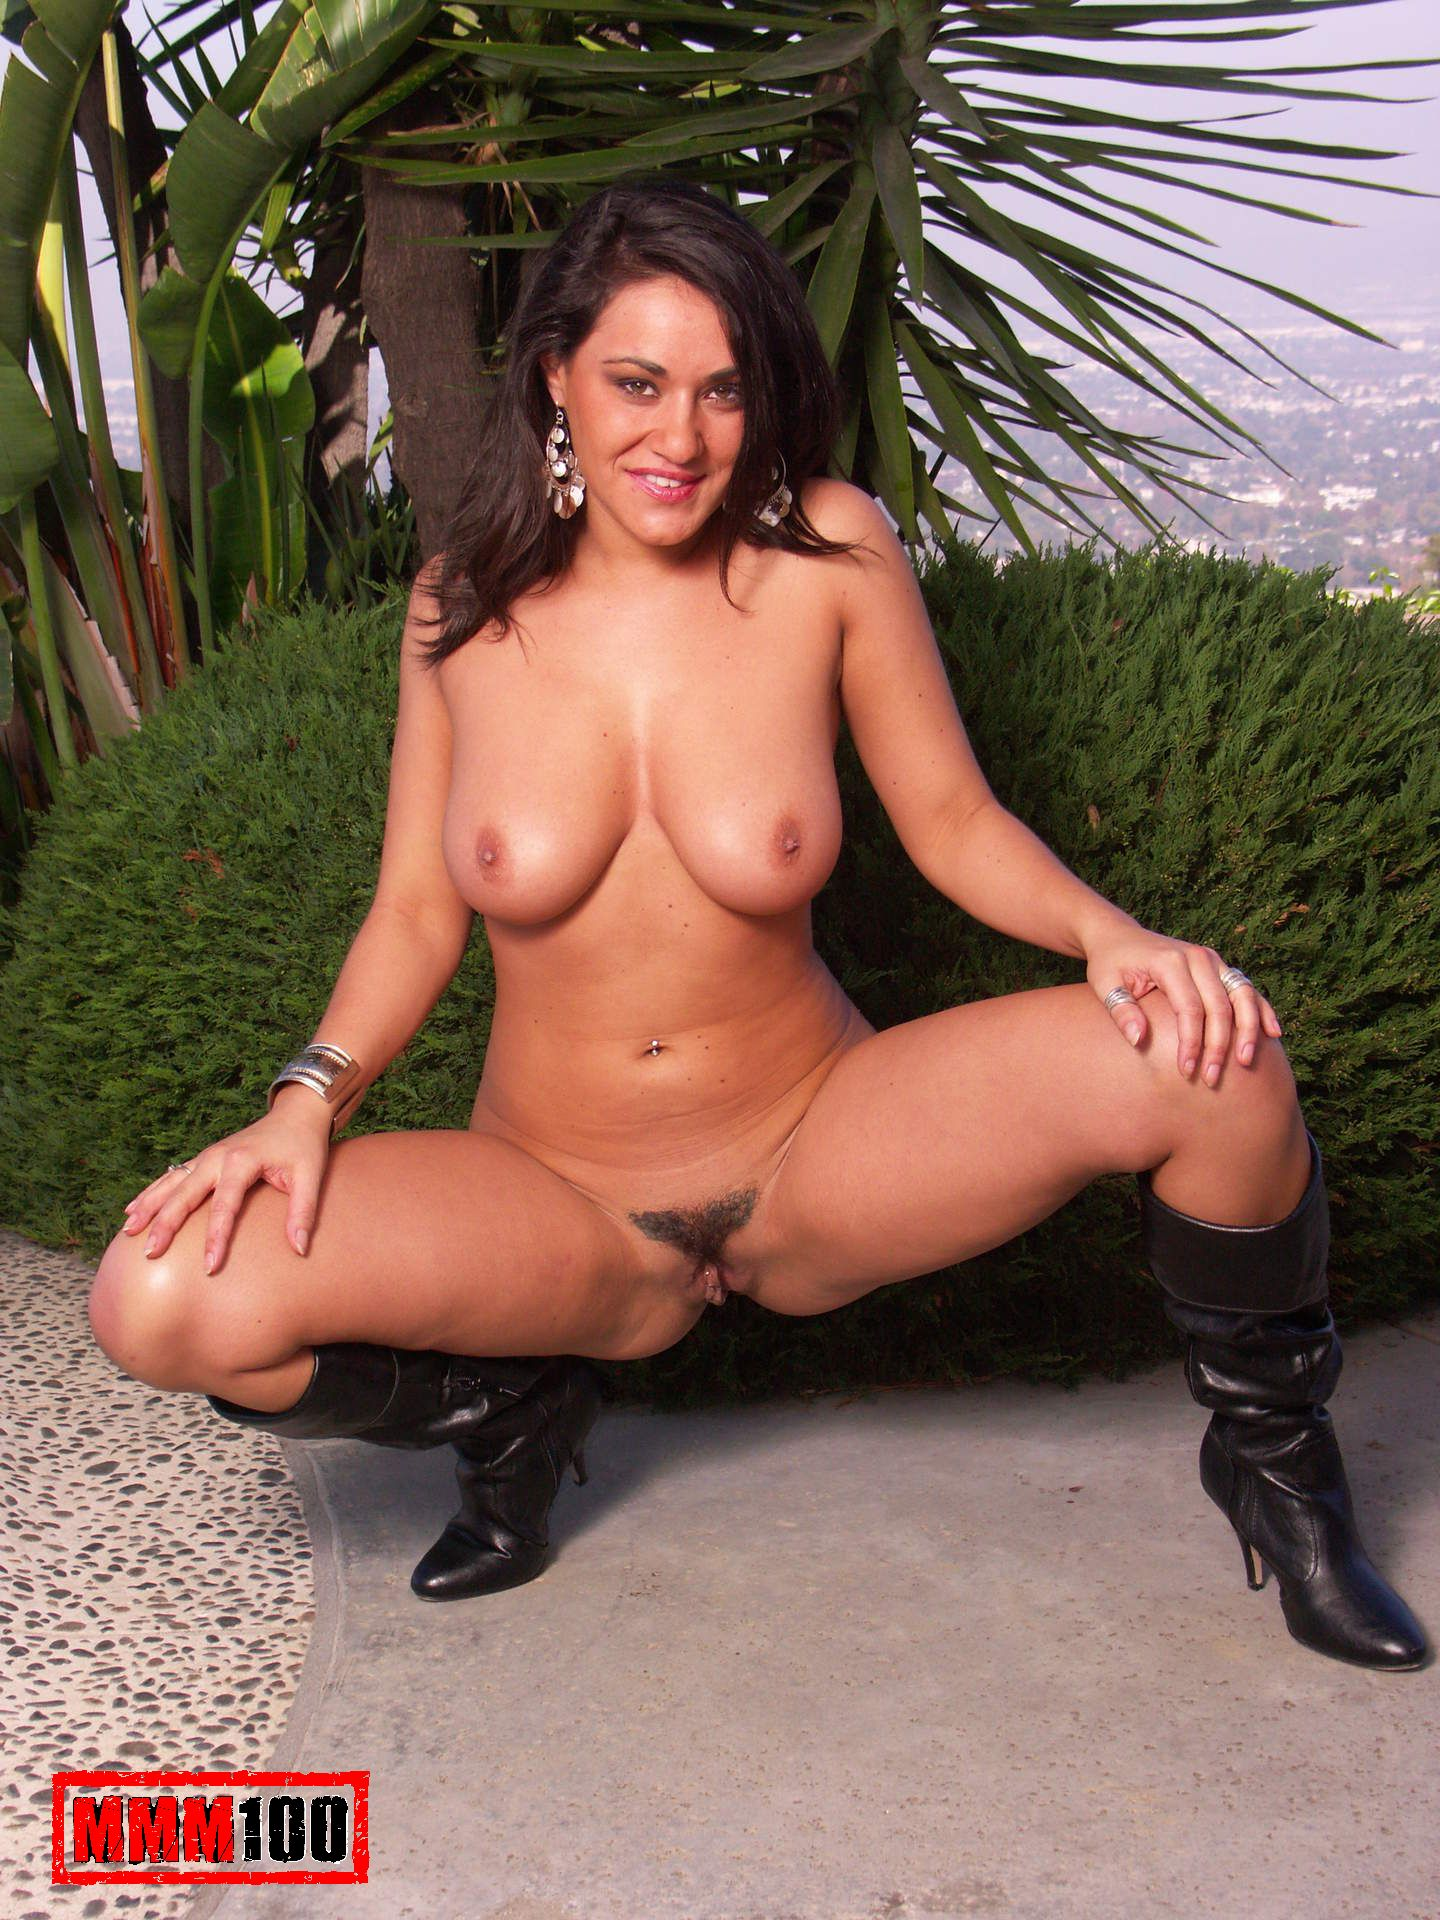 Charley chase videos